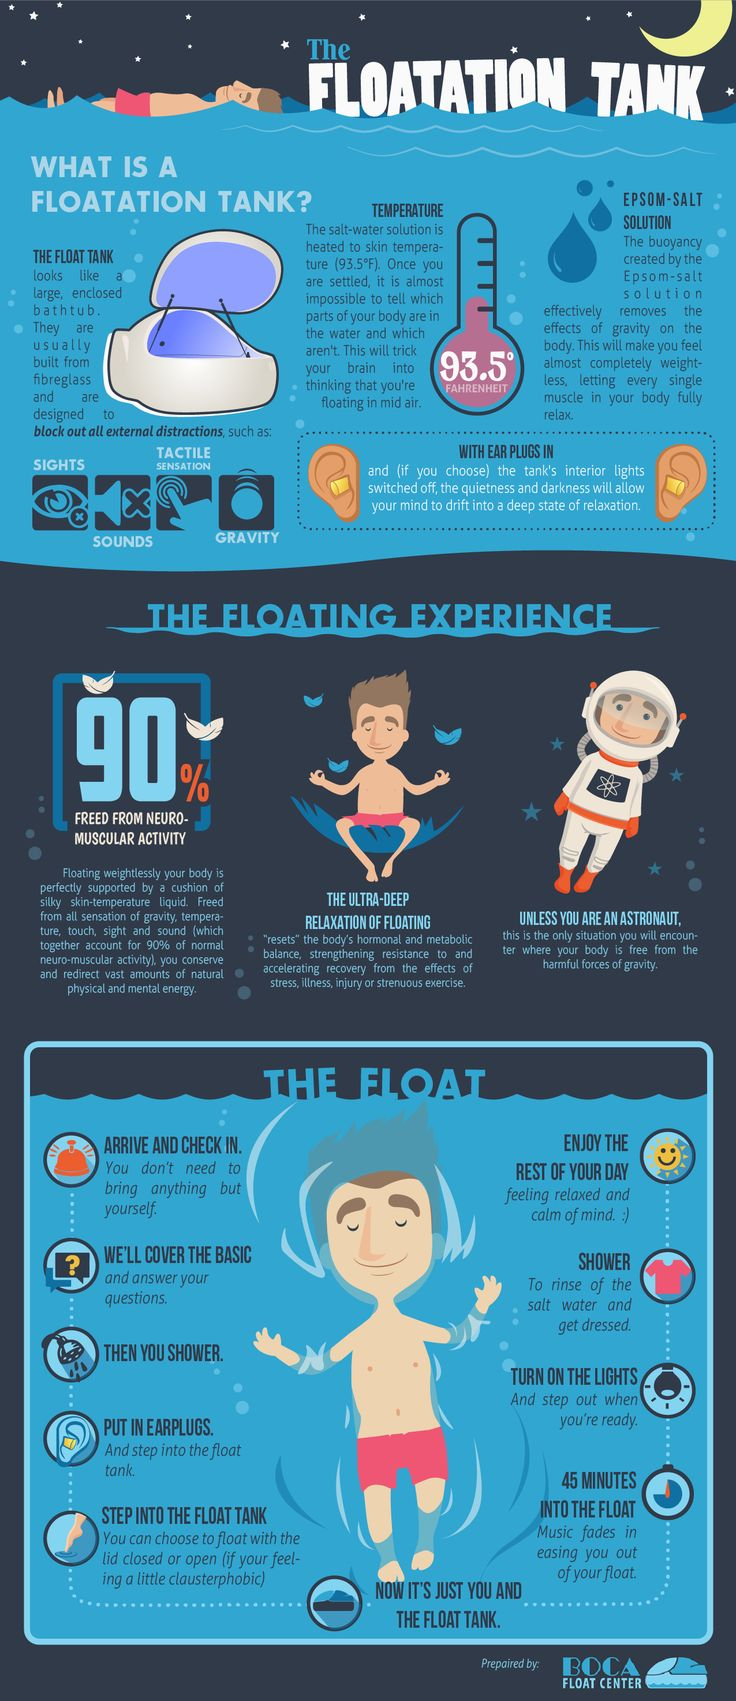 The Floatation Tank [Infographic] - reward @ six stone - achieved 15/7/15